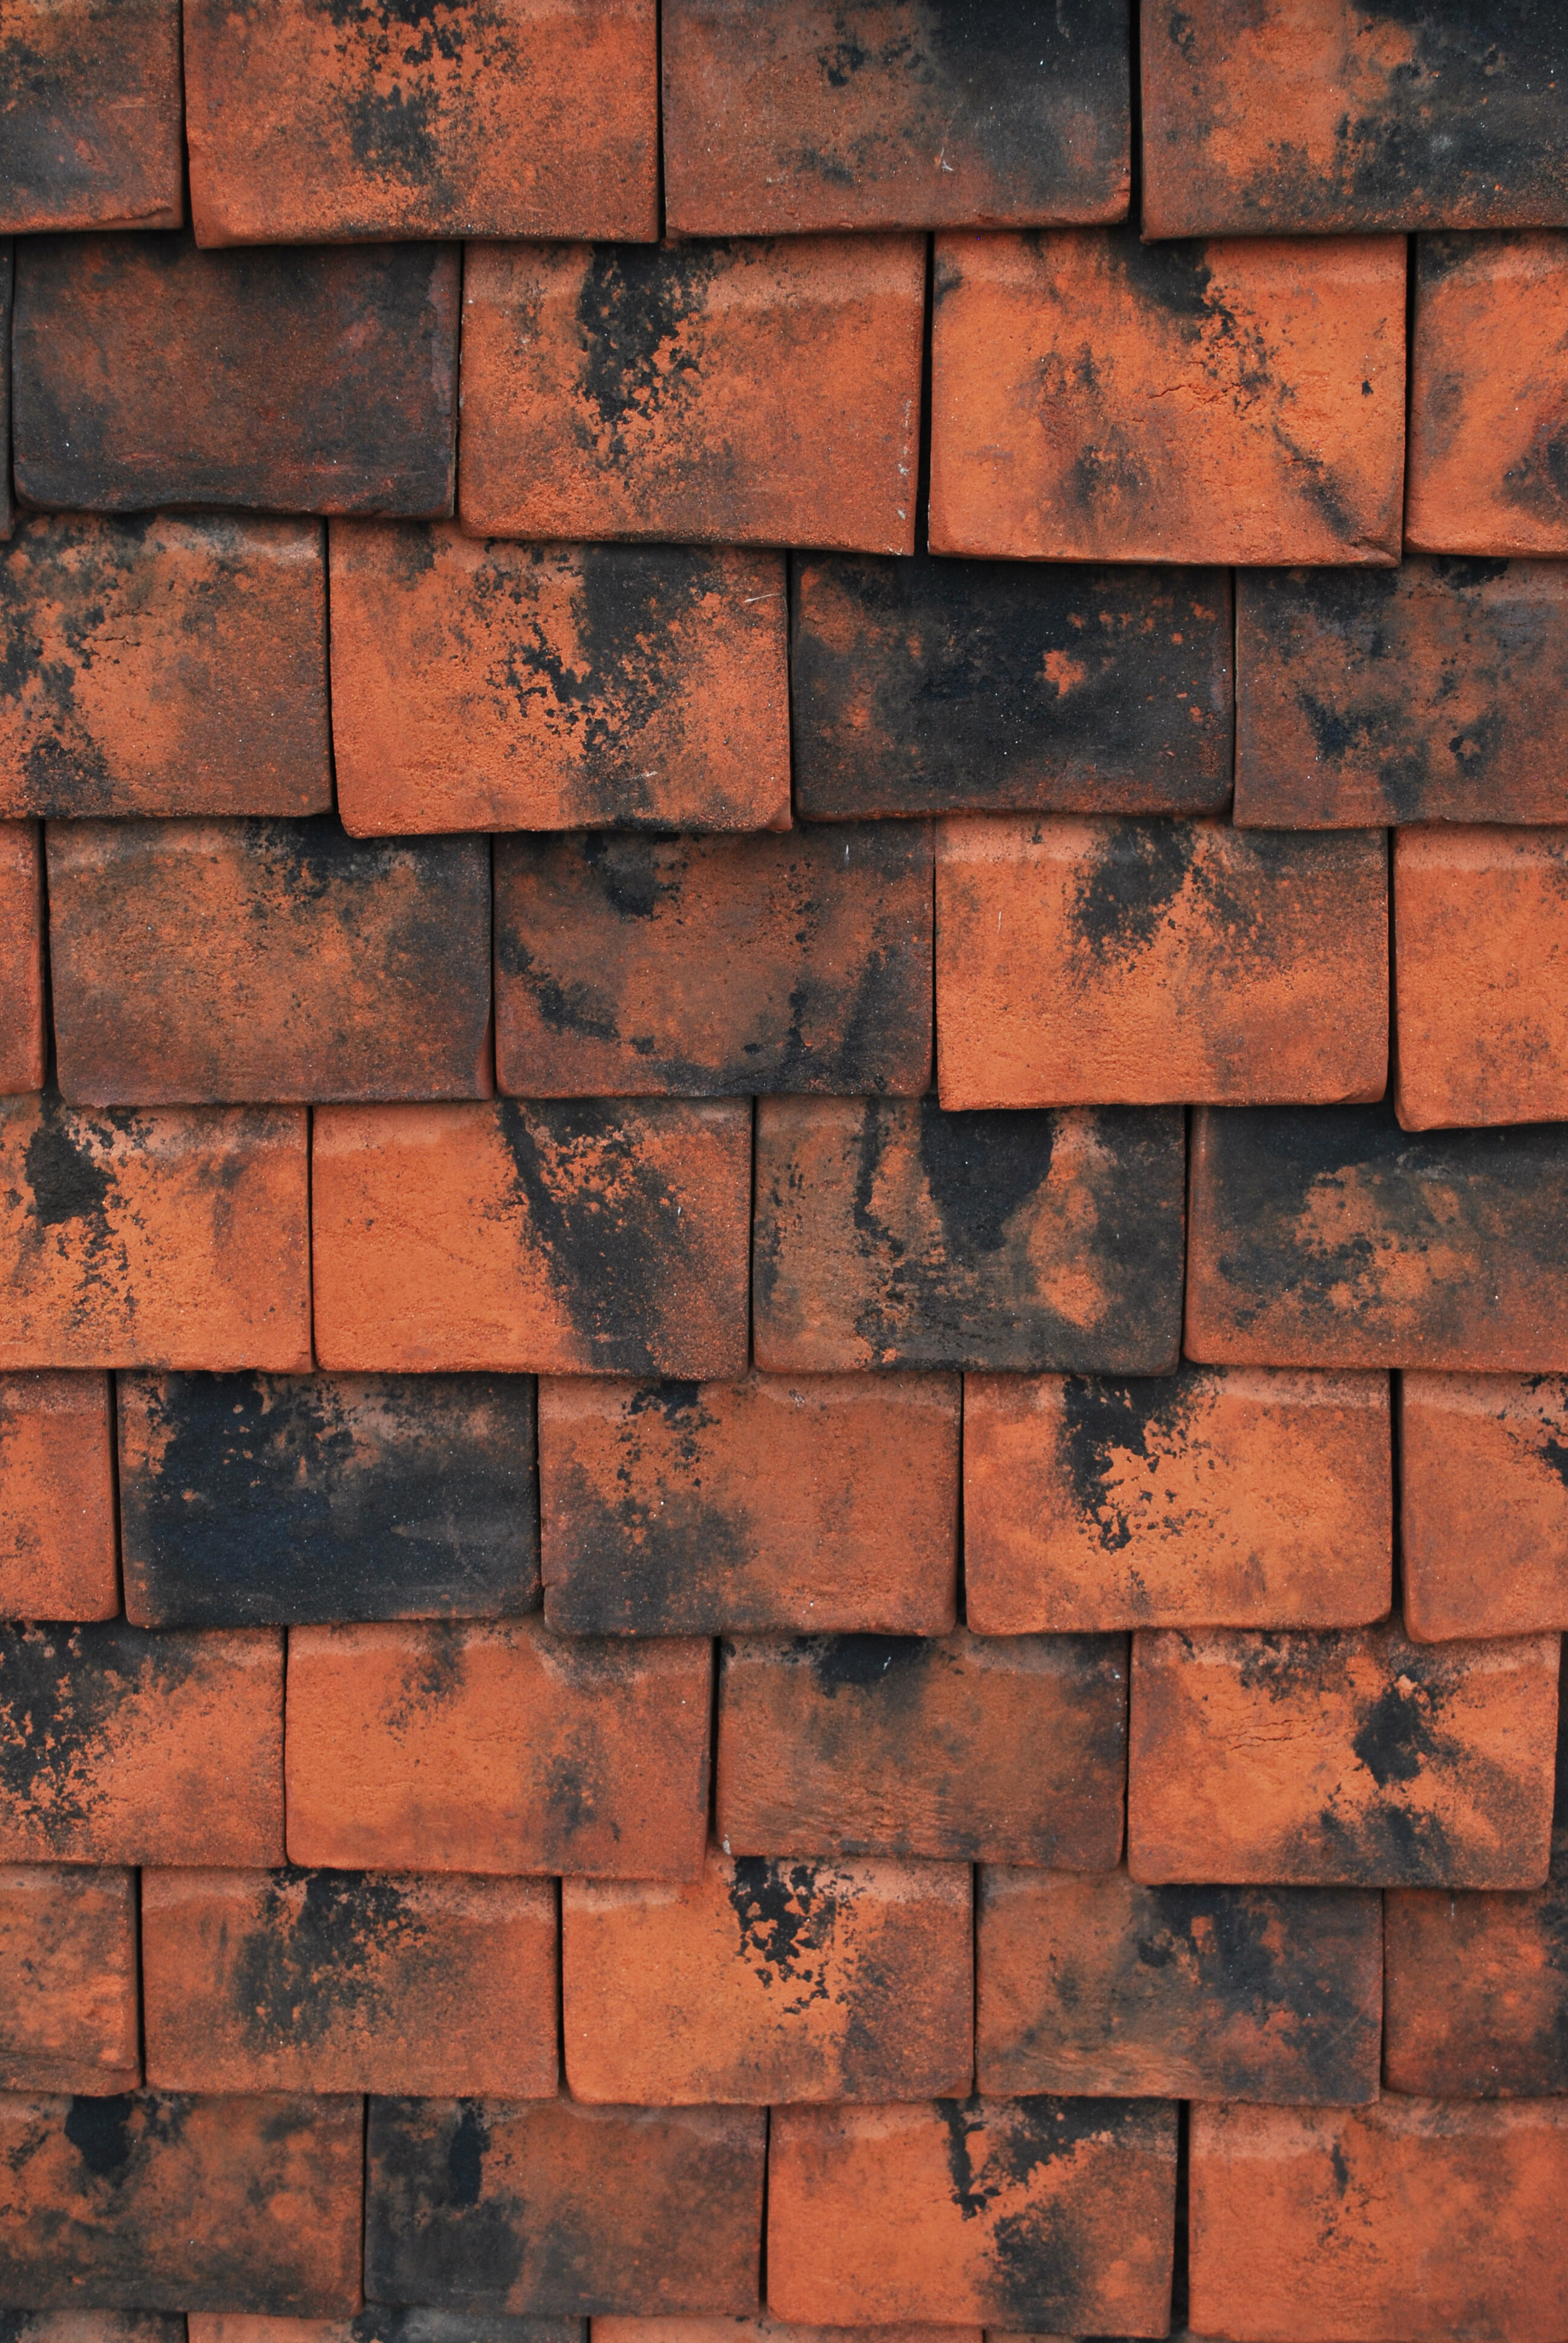 Traditional Handmade Clay Roof Tiles By Sahtas Media Photos And Videos 5 Archello